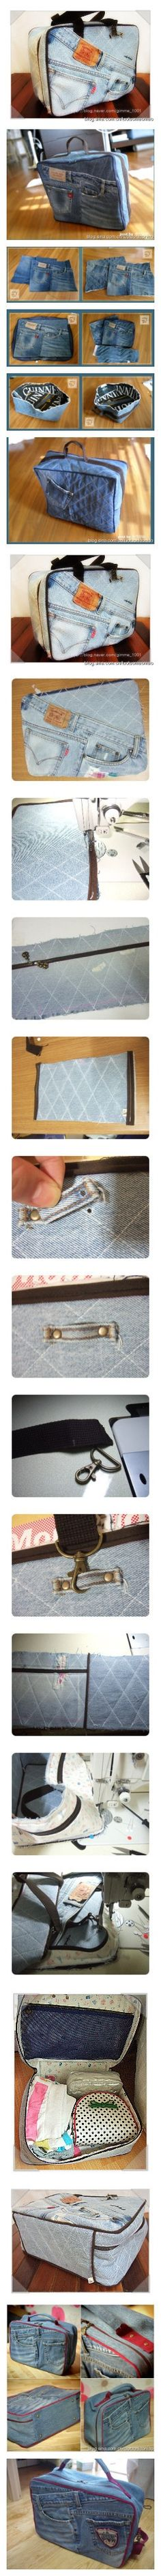 love the belt loops to hook the strap onto    Creative Sewing idea #diy #crafts